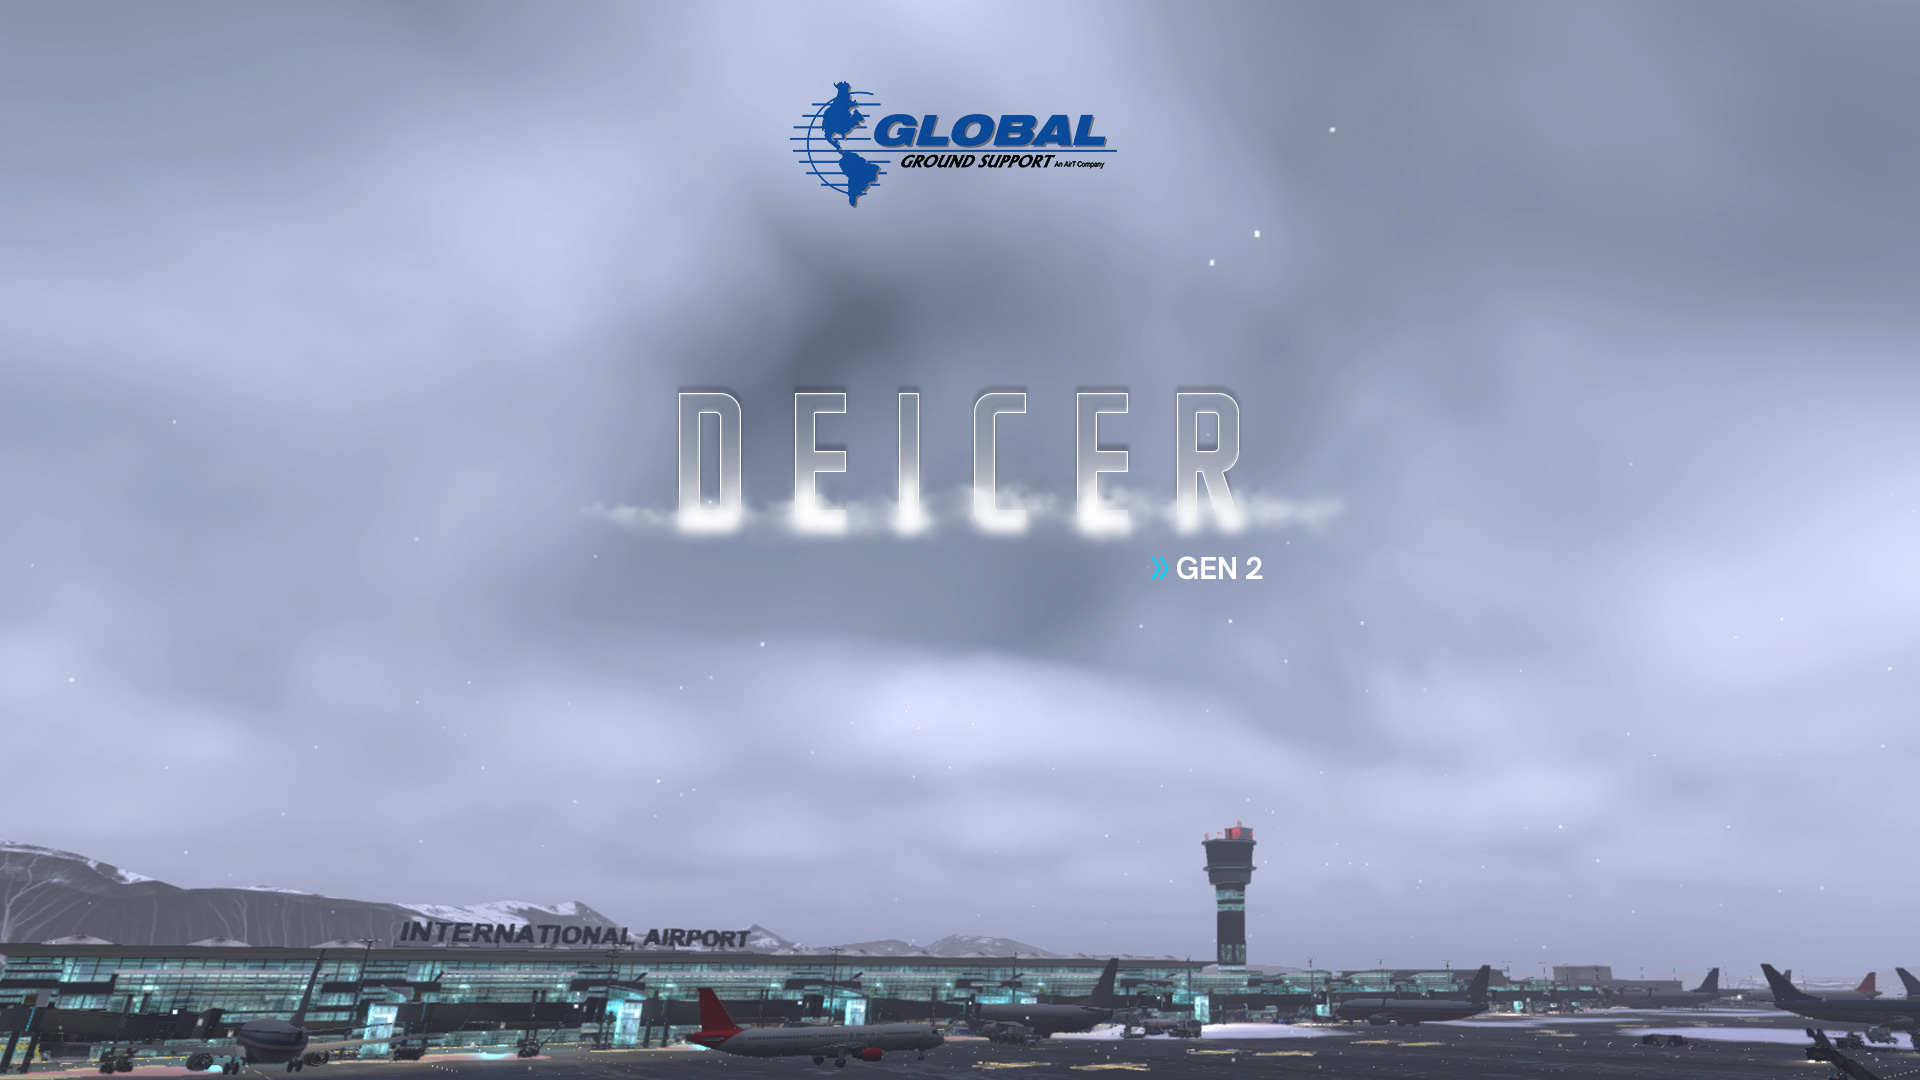 Global Ground Support Deicer